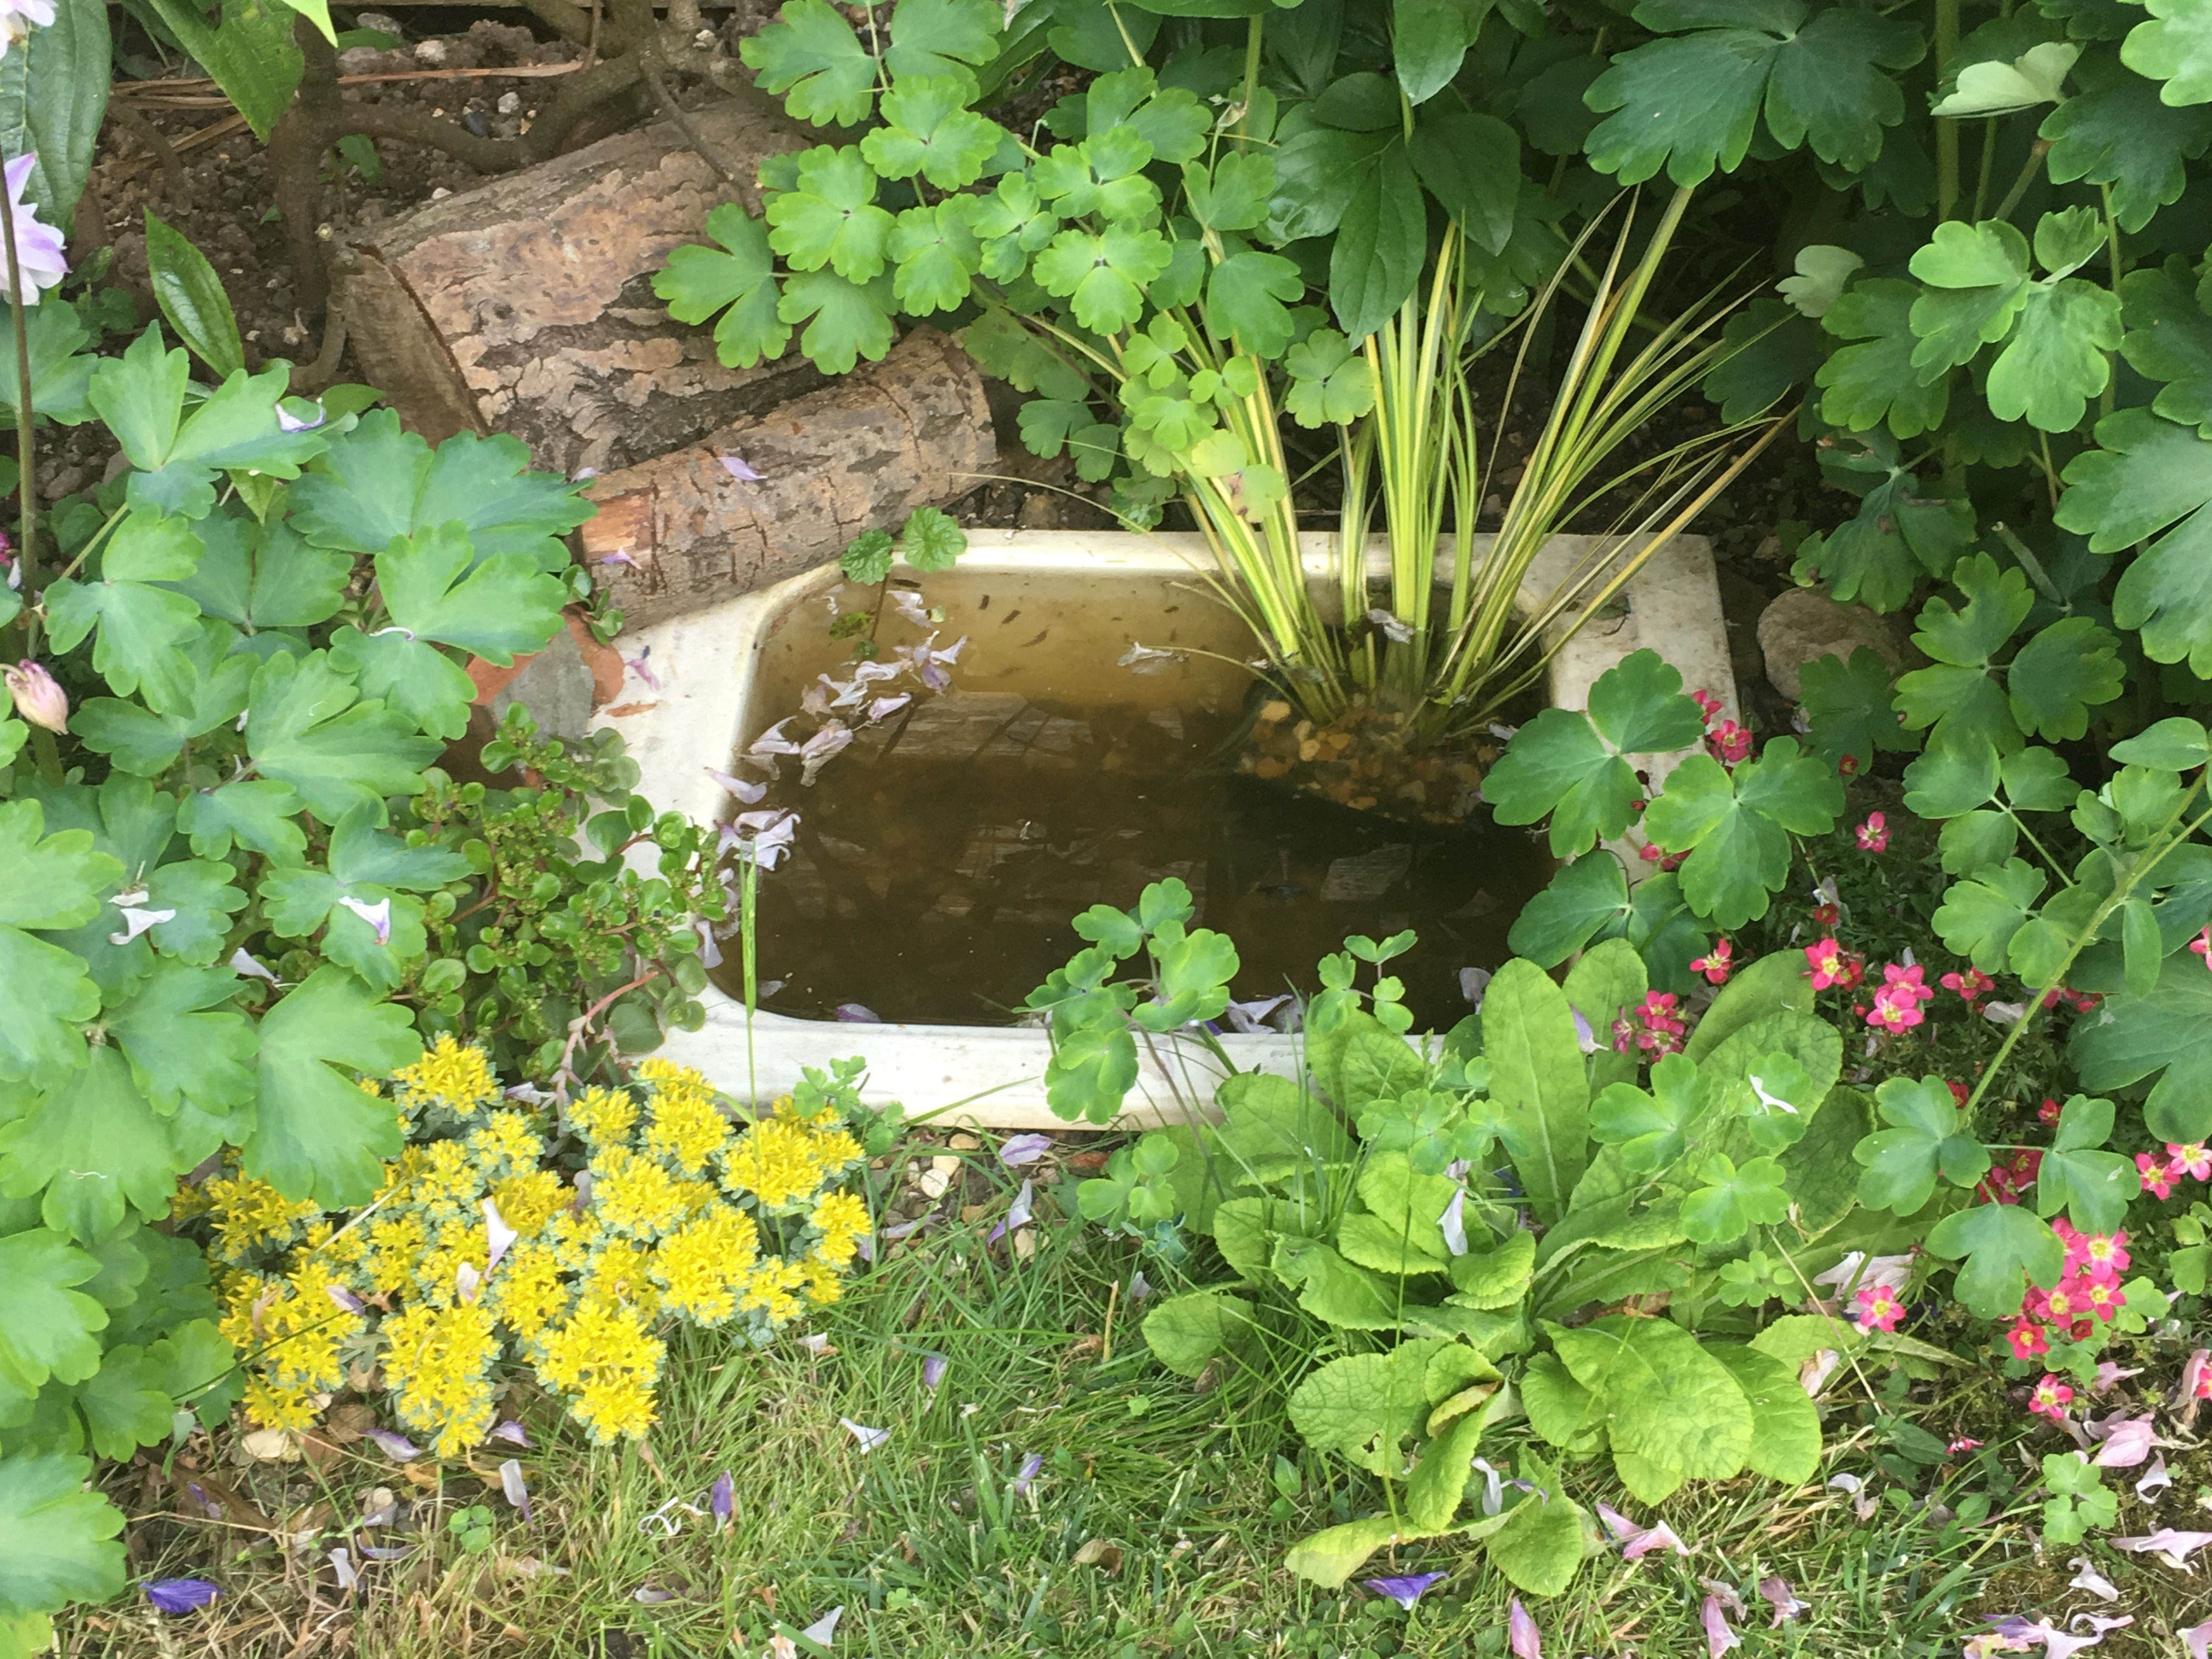 A little watering hole haven for wild life created from a